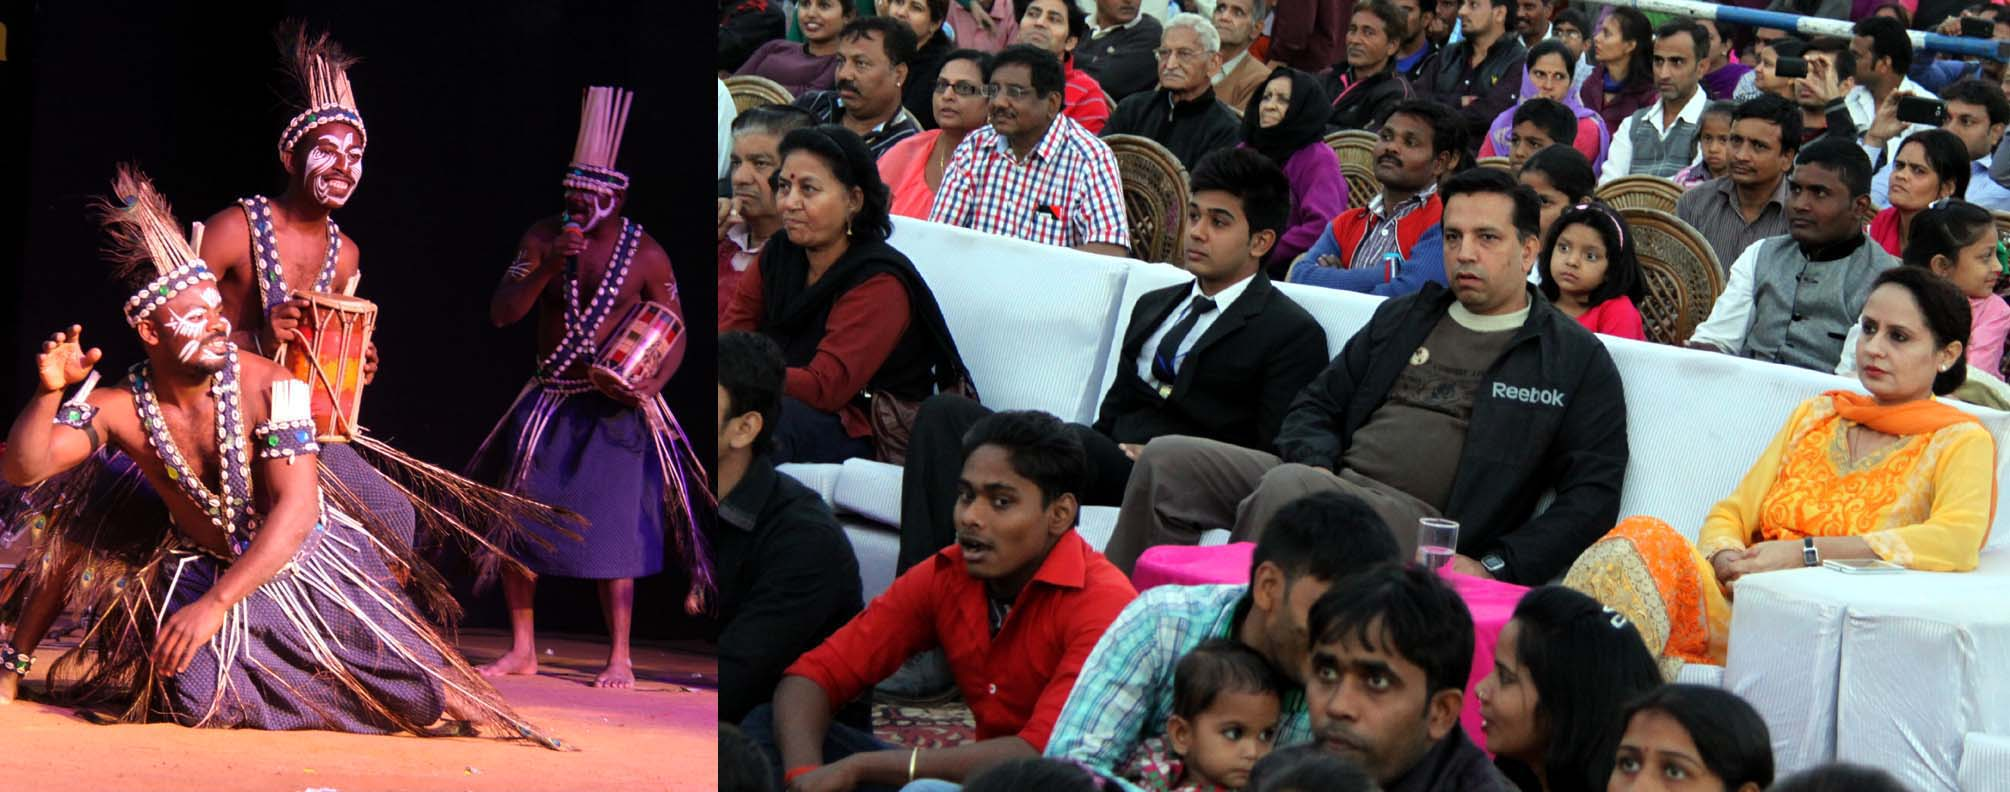 UT Director Cultural Affairs, Mrs. Amandeep Kaur and others watching the Folk Dances at the closing ceremony of 6th Chandigarh National Craft Mela at Kalagram, Chandigarh on Sunday, November 23, 2014.